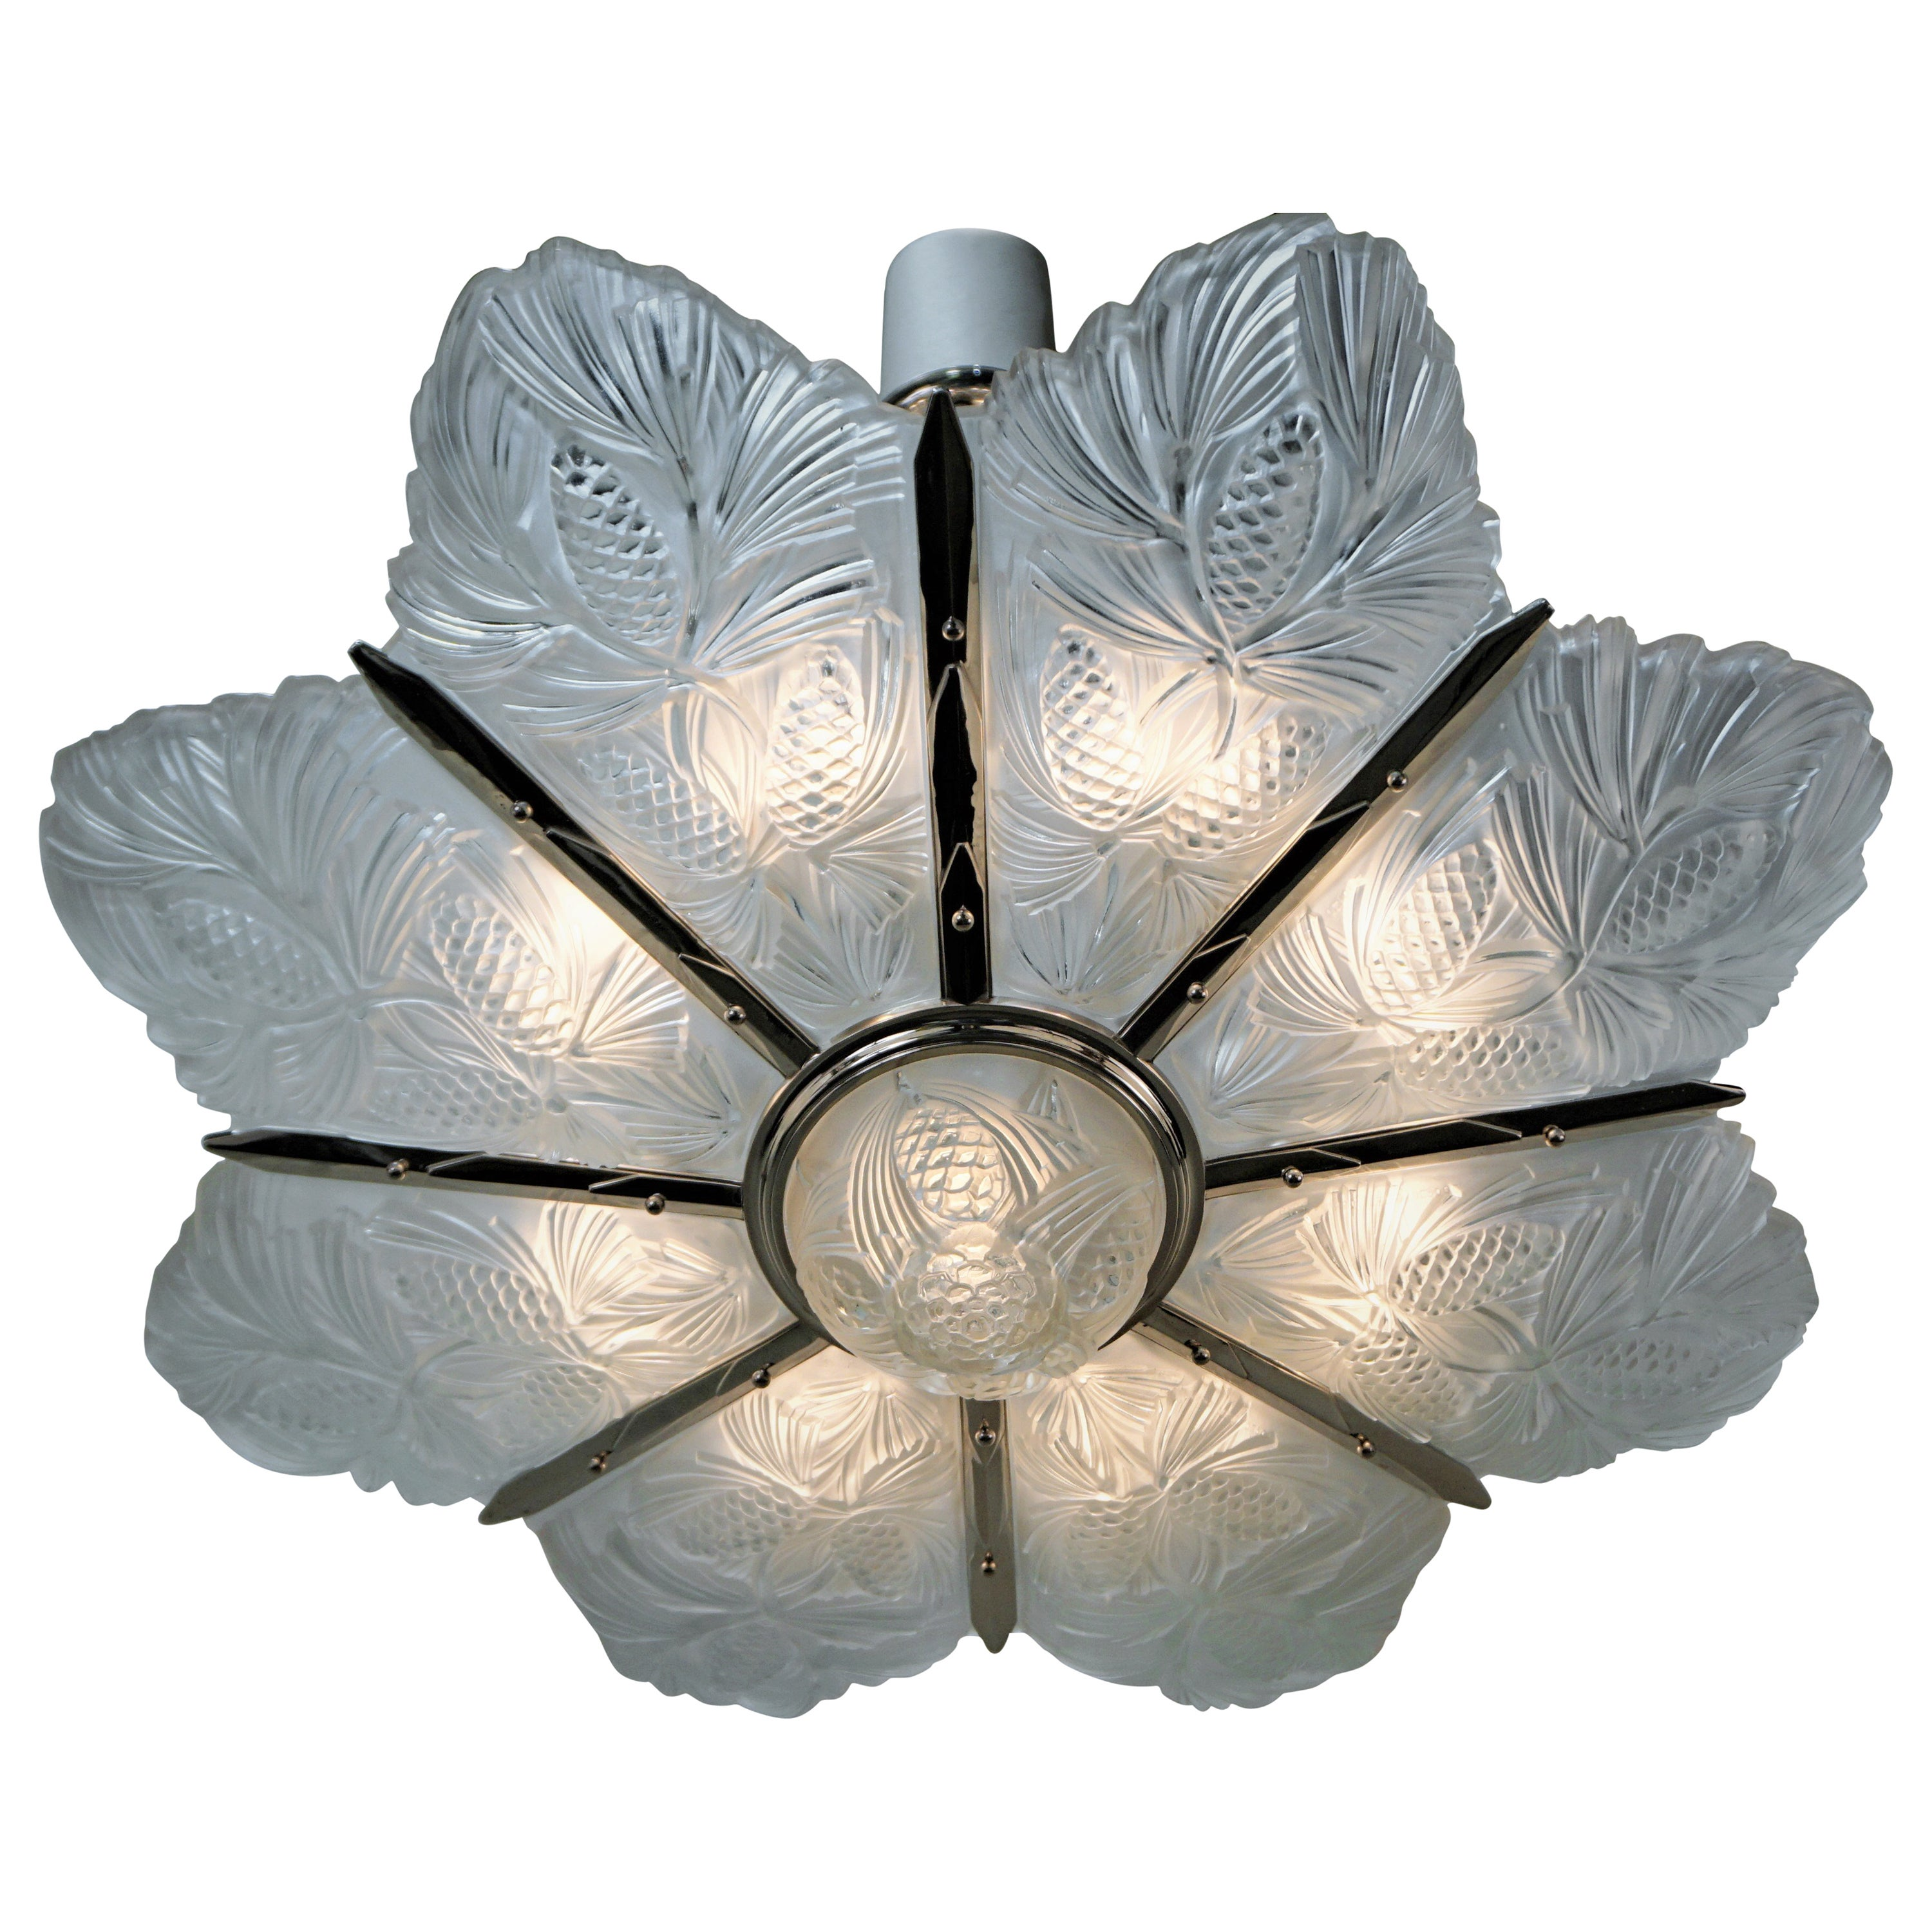 Set of Three Large Art Deco Chandeliers by Sabino